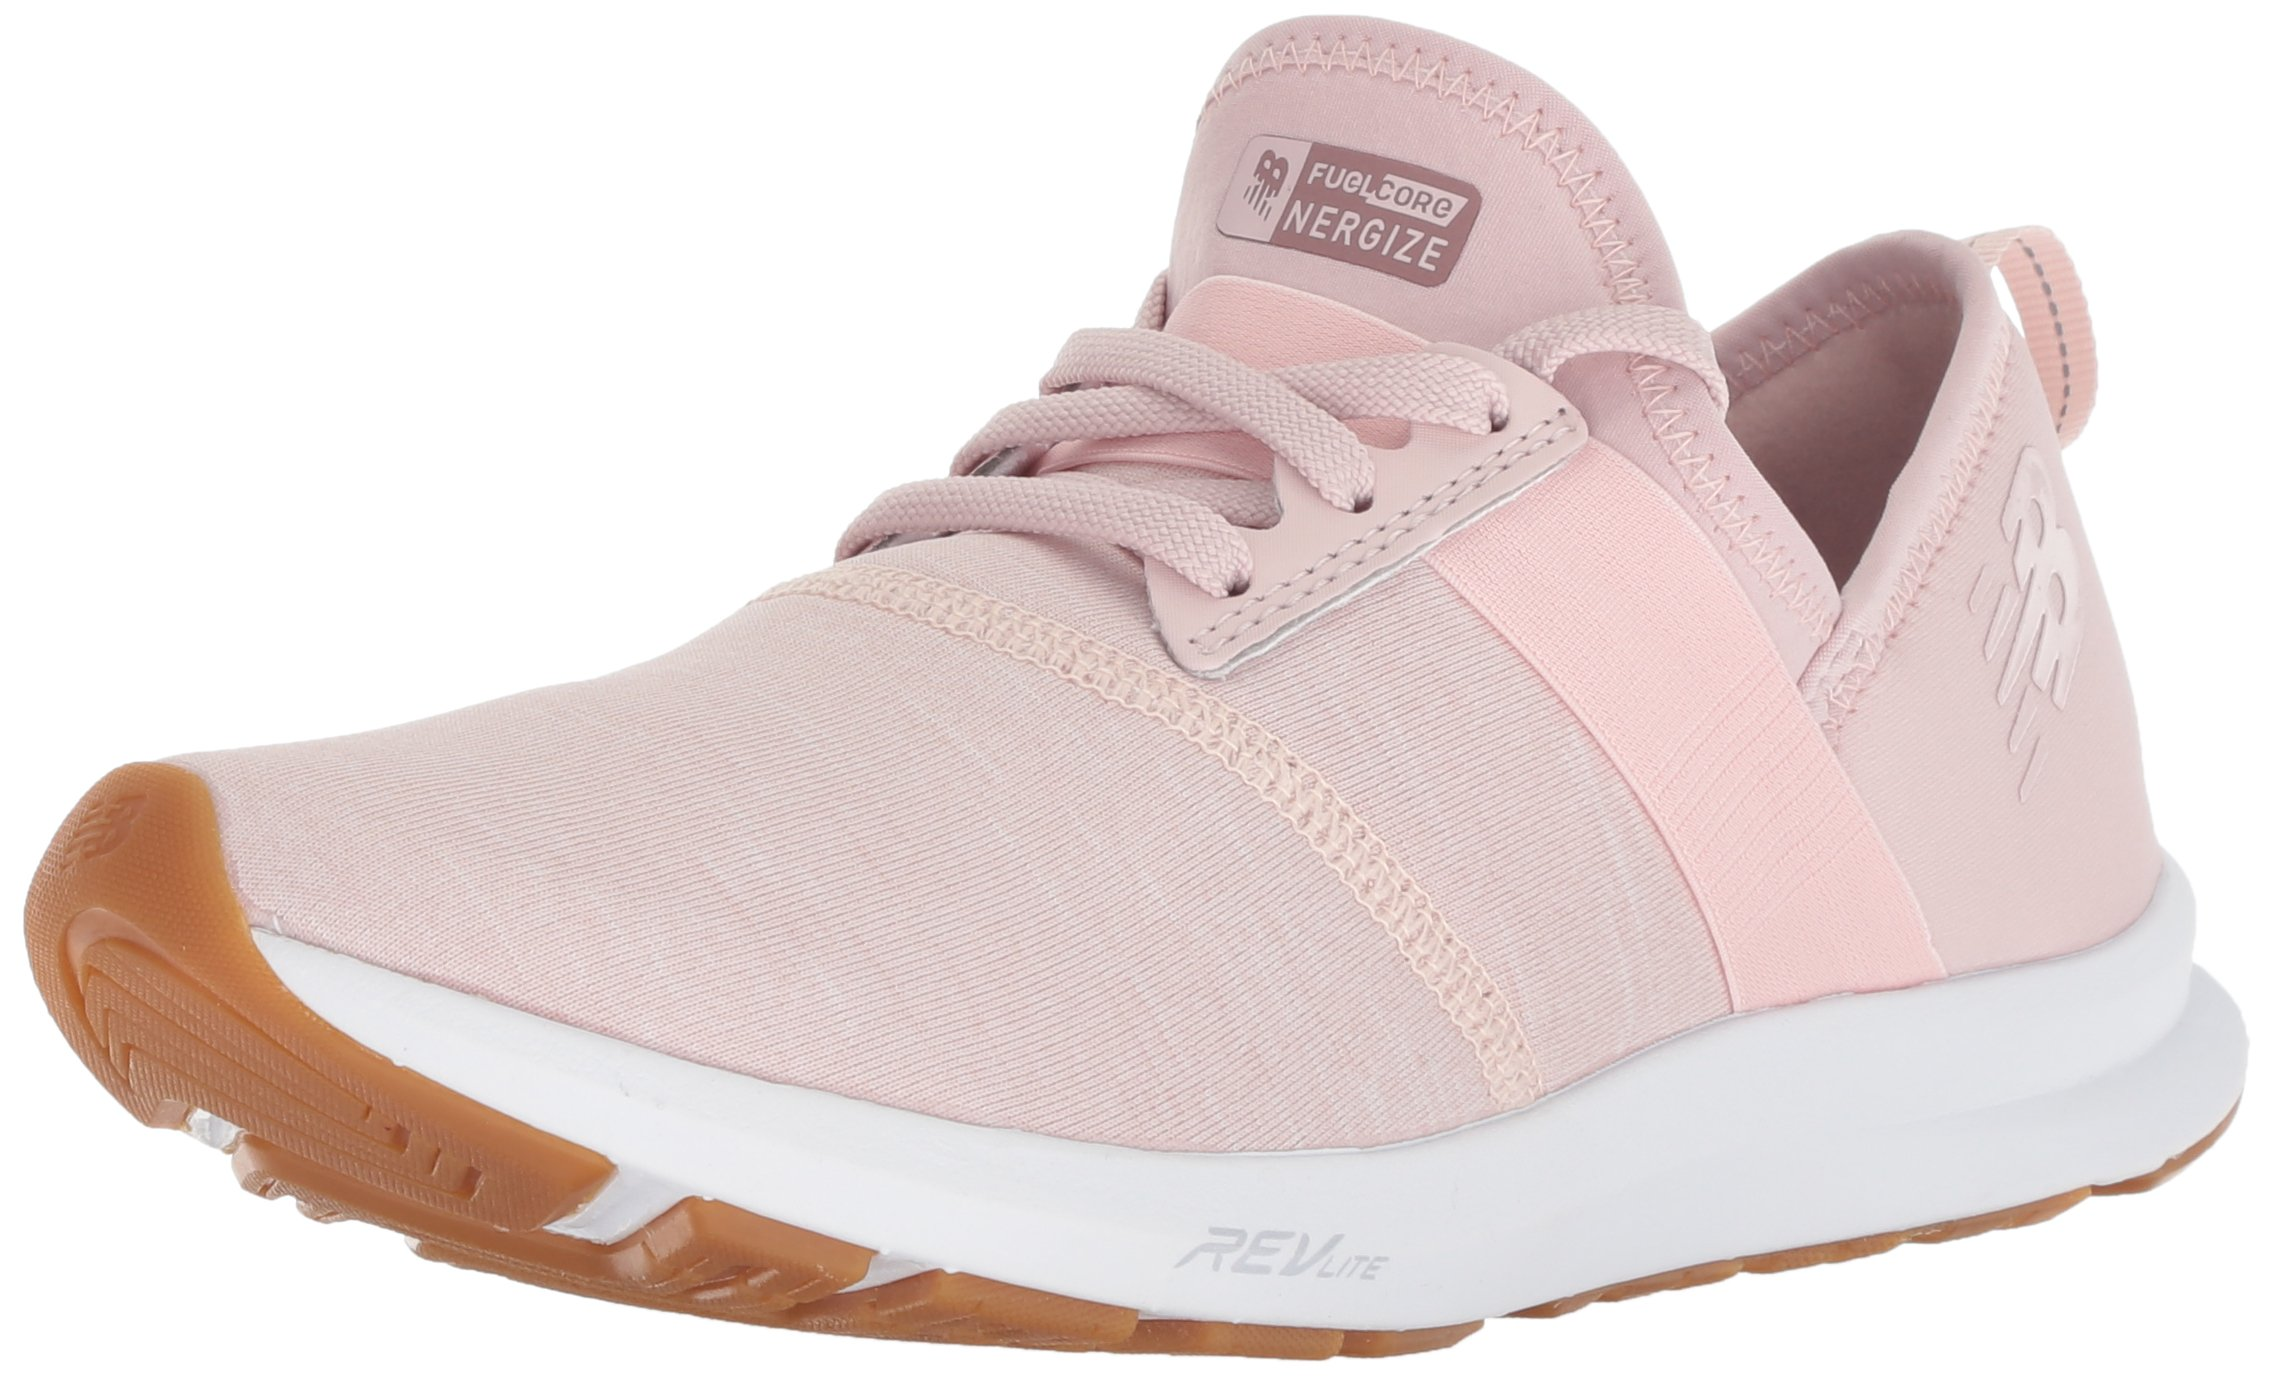 New Balance Women's Nergize V1 FuelCore Sneaker,CONCH SHELL,5 B US